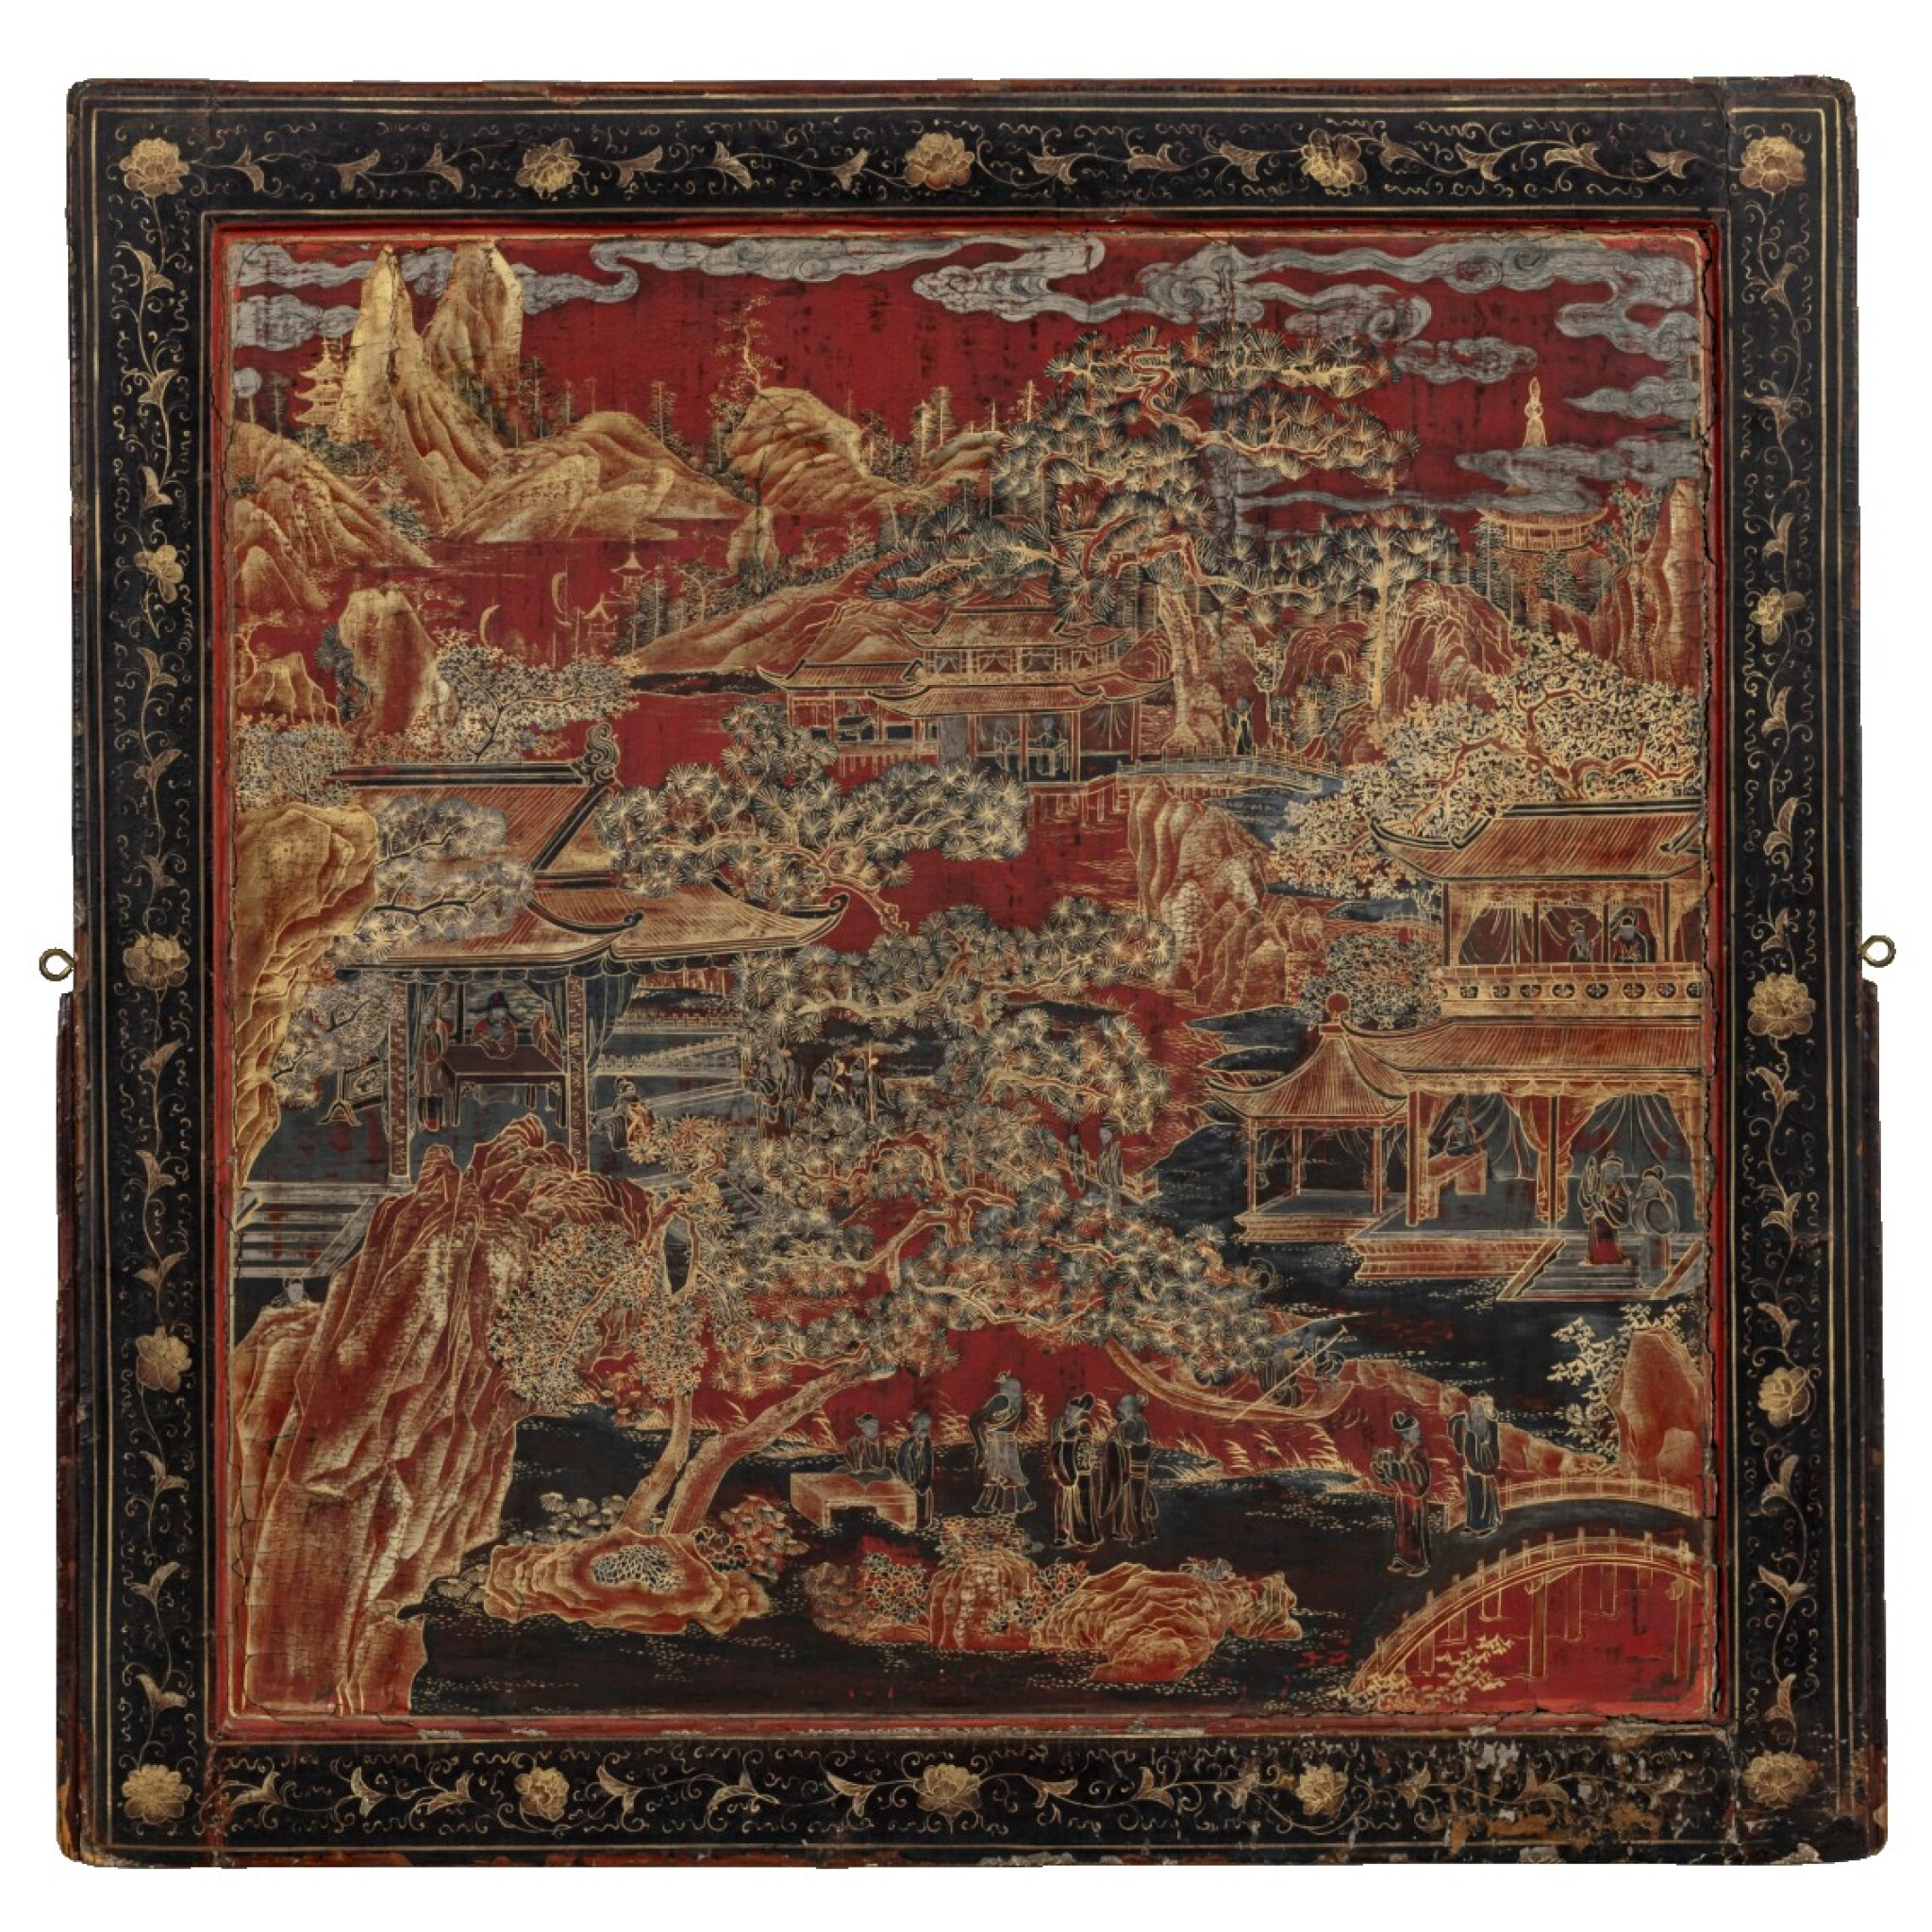 View 1 of Lot 91. Grand écran de lettré en laque polychrome et doré incrusté de nacre Dynastie Qing, époque Kangxi | 清康熙 描金彩繪嵌螺鈿山水樓閣圖雙面插屏 | A large lacquer-gilt and mother-of-pearl inlaid figural screen panel, Qing Dynasty, Kangxi period.